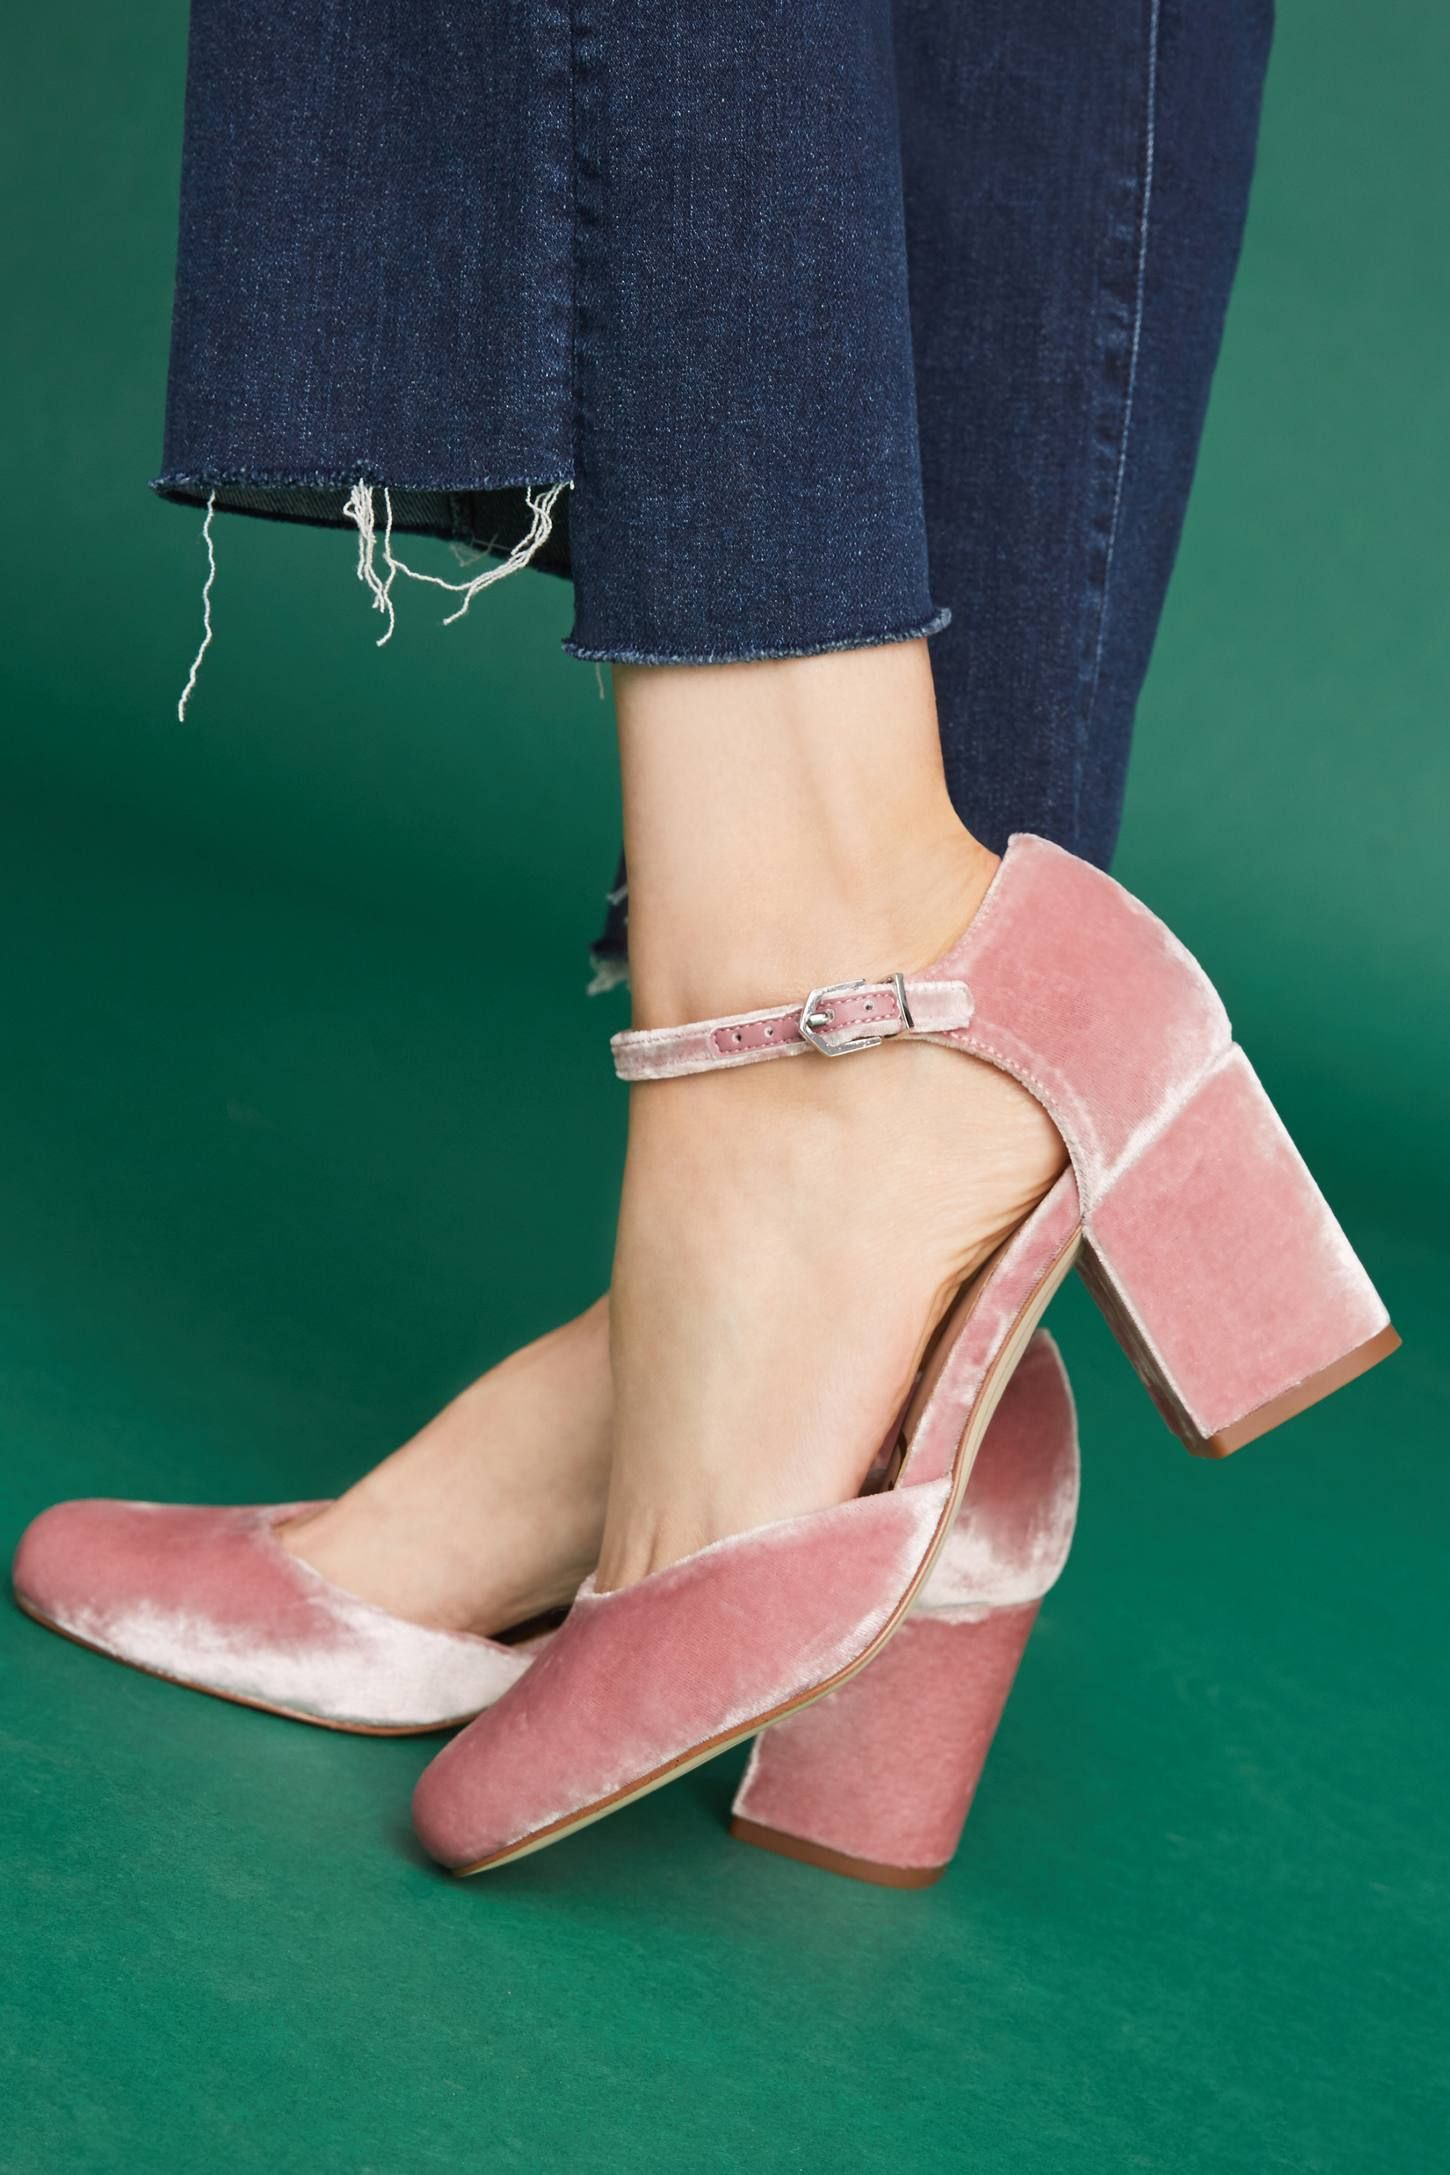 26870ae44 Shop the Sam Edelman Clover Block Heels and more Anthropologie at  Anthropologie today. Read customer reviews